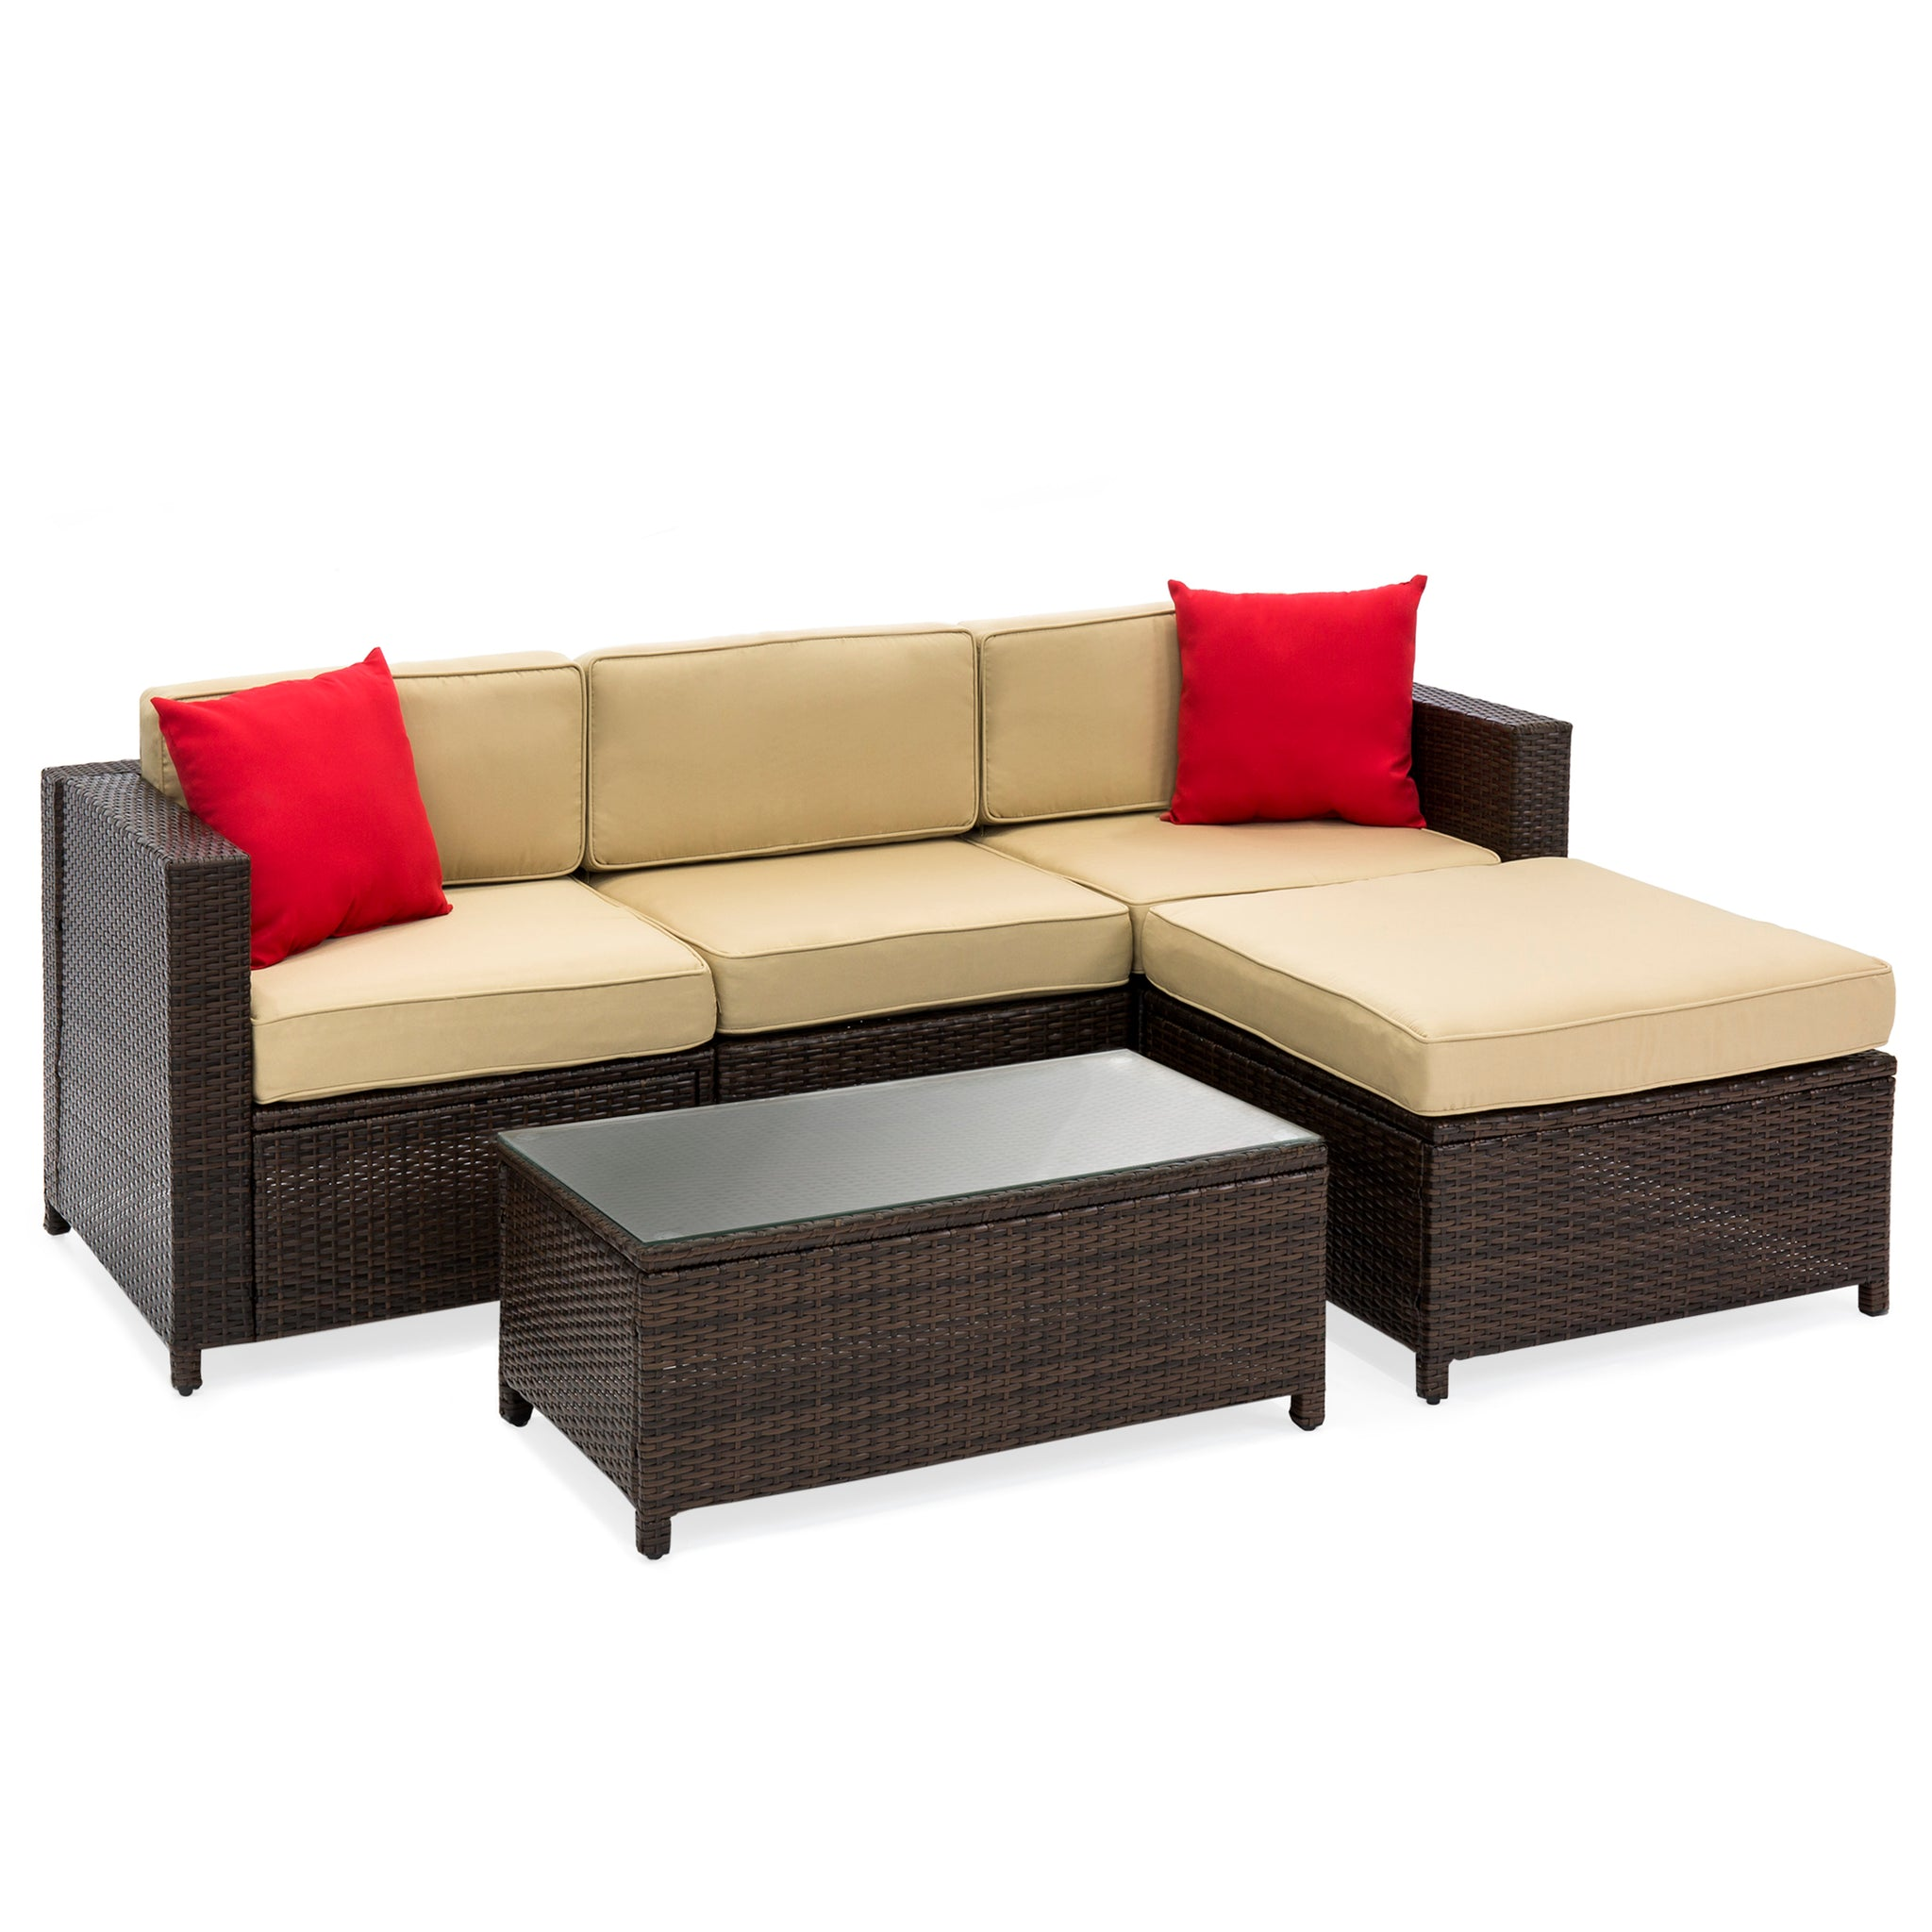 5 Piece Wicker Patio Sectional Set W/ Beige Cushions And Red Accent Pillows